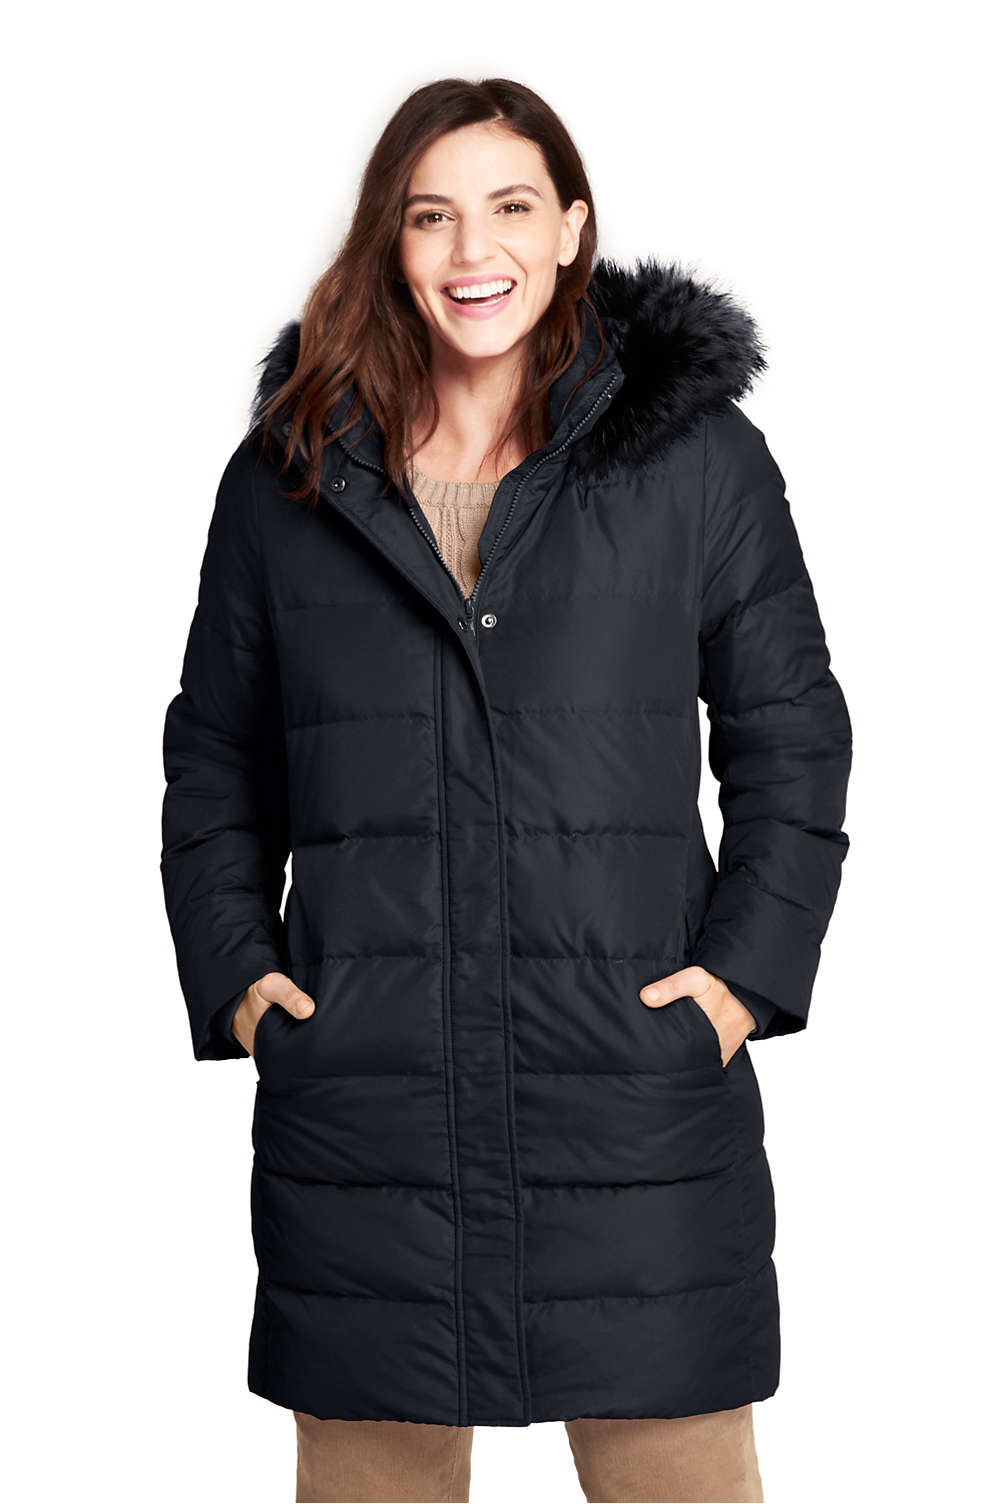 14006e67f24 Women s Plus Size Winter Long Down Coat with Faux Fur Hood from Lands  End